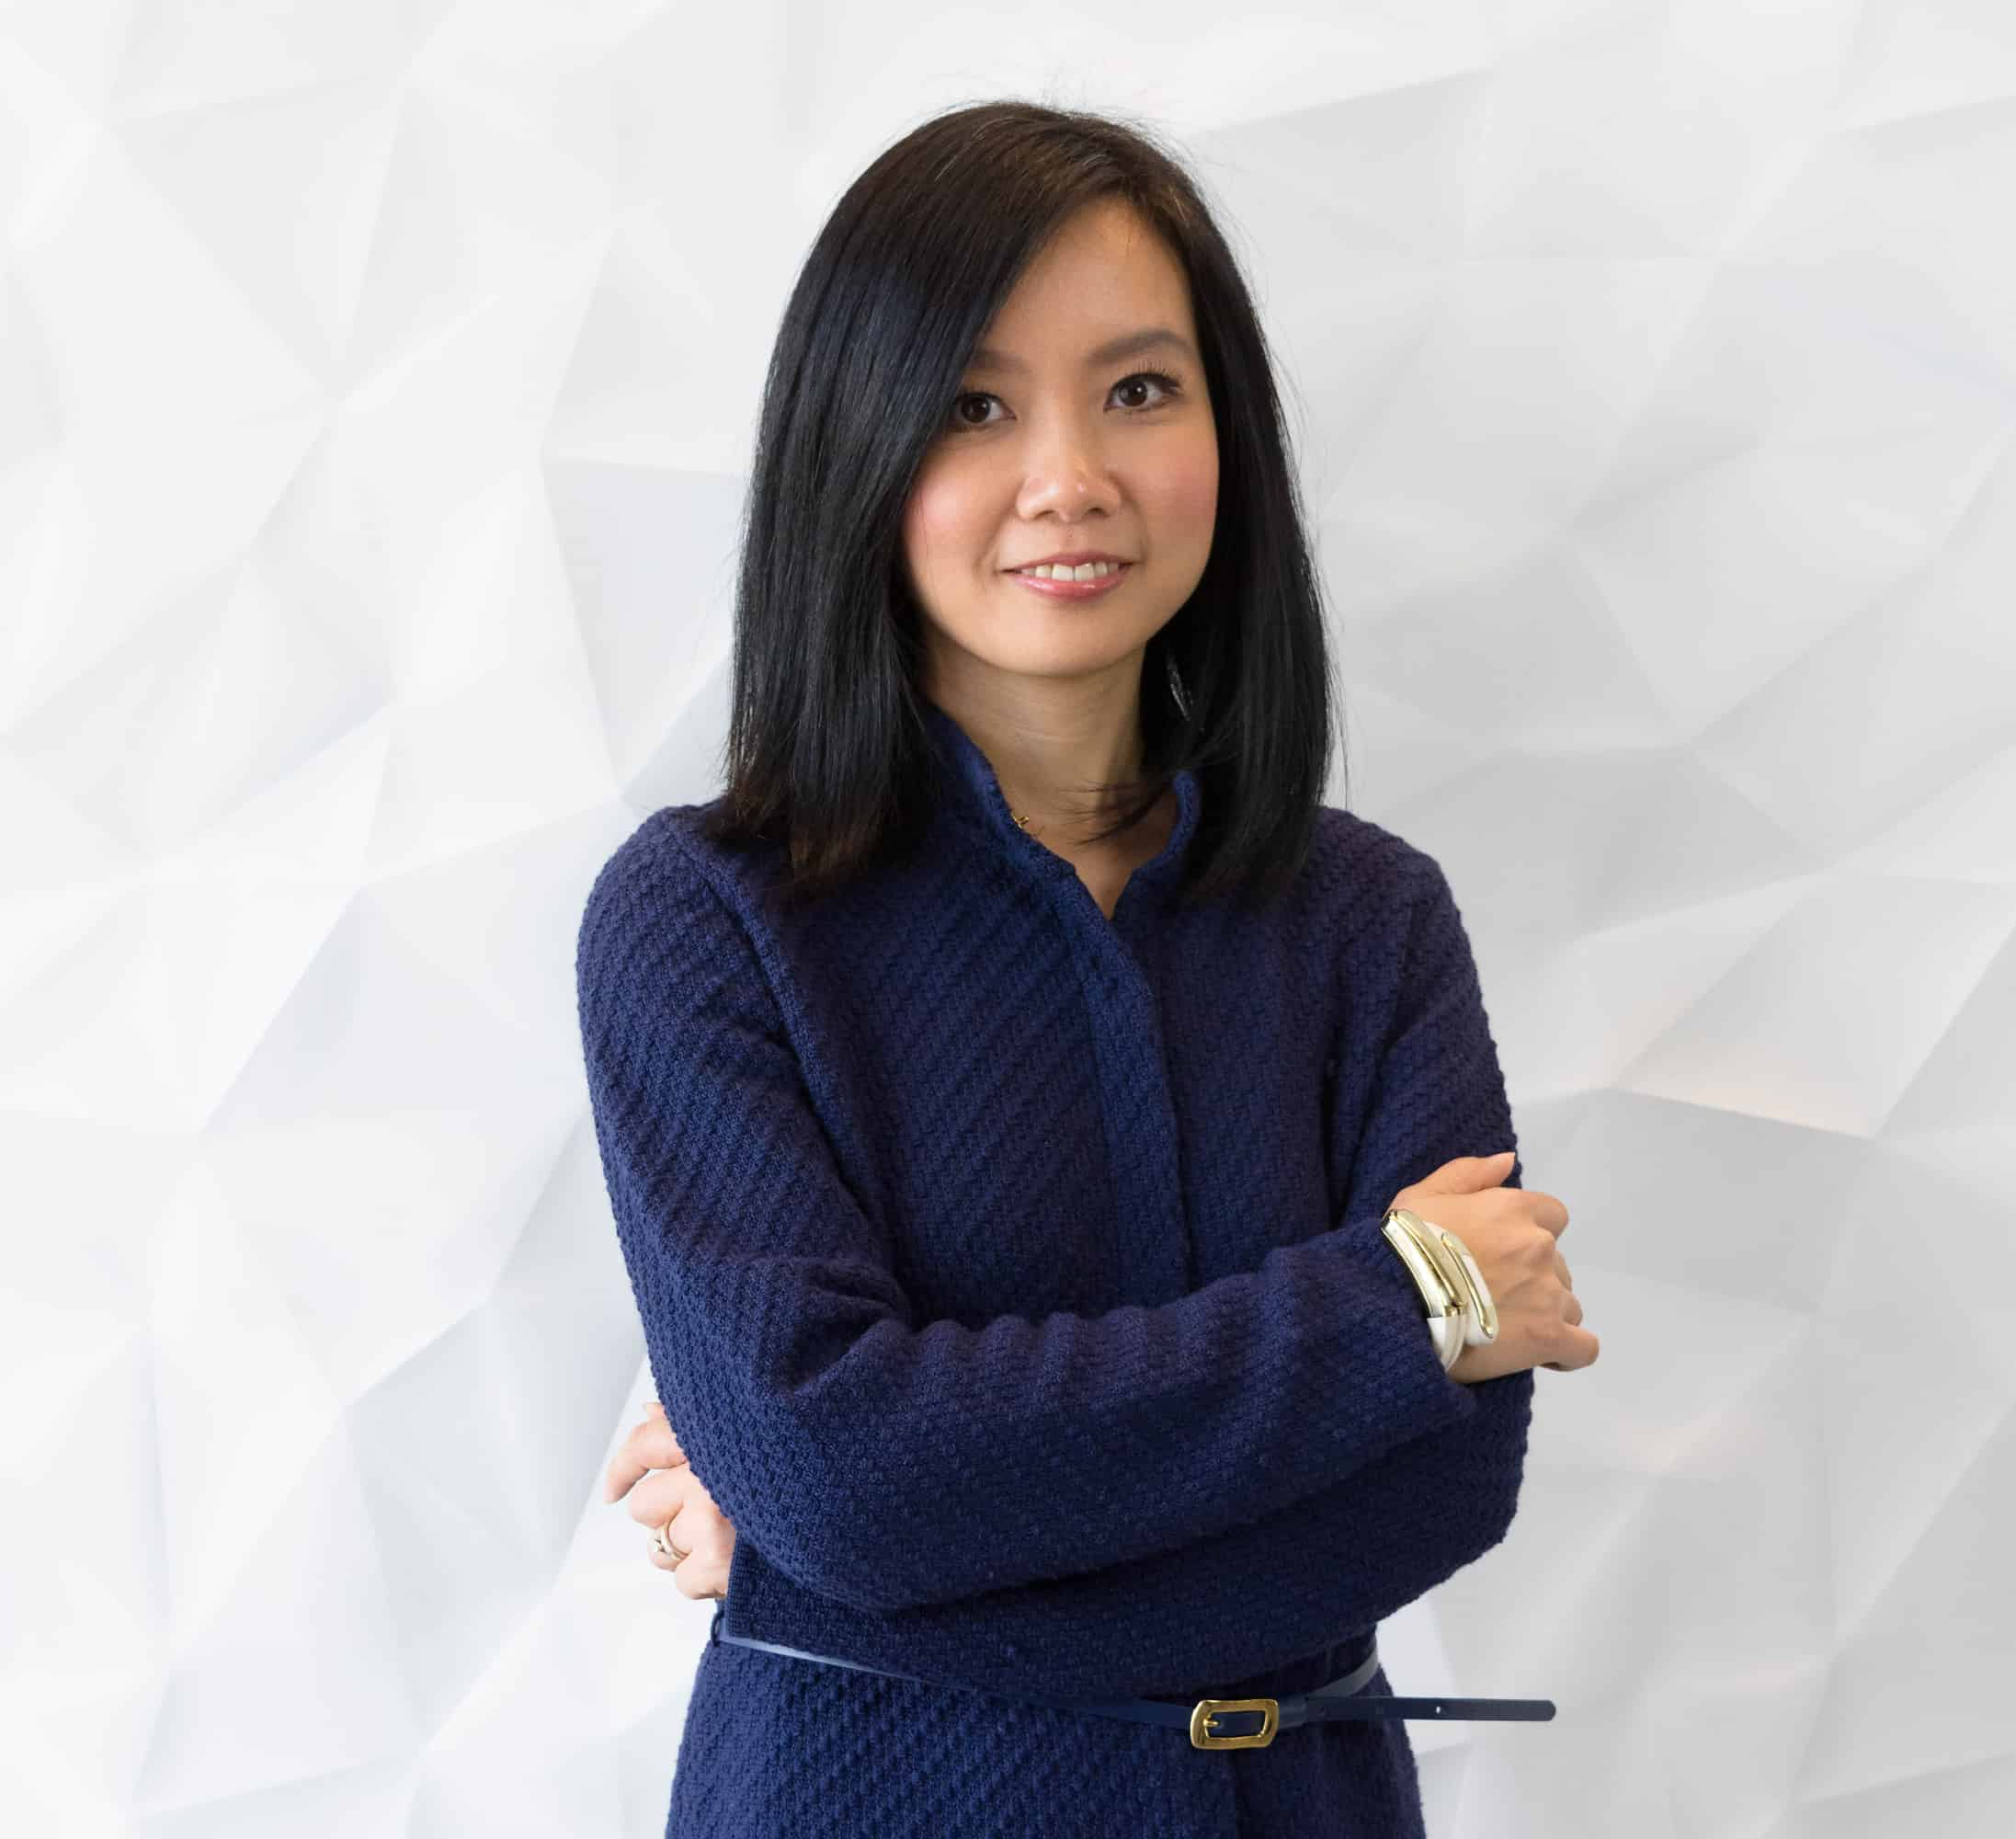 Angela Pan, Founder and CEO of the Helix Cuff